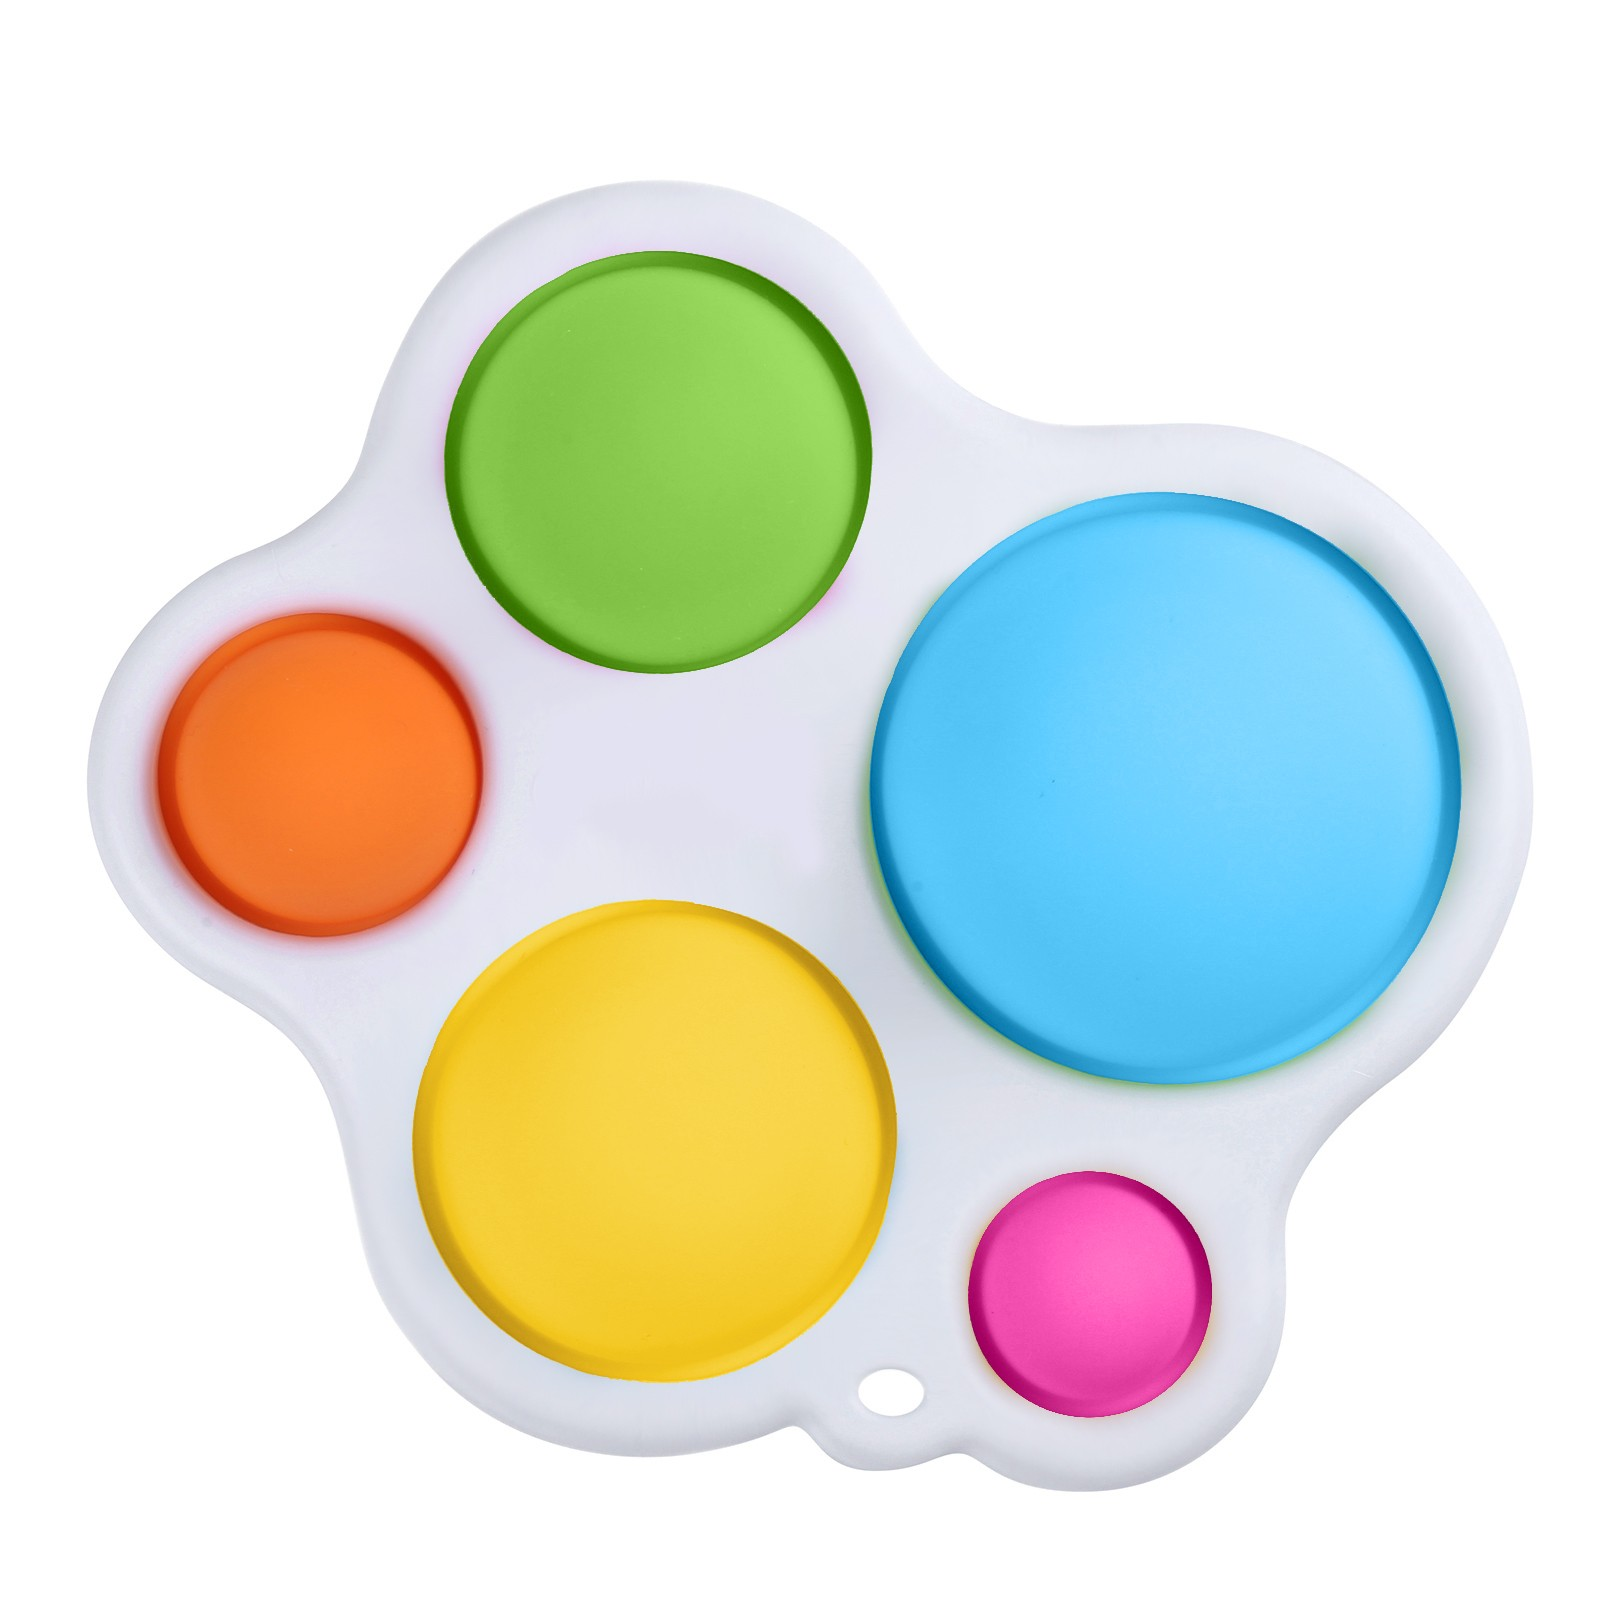 Simple Dimple Fidget Toy Small Fidget Toys Popit Figet Toys Stress Relief For Kids Adults img2